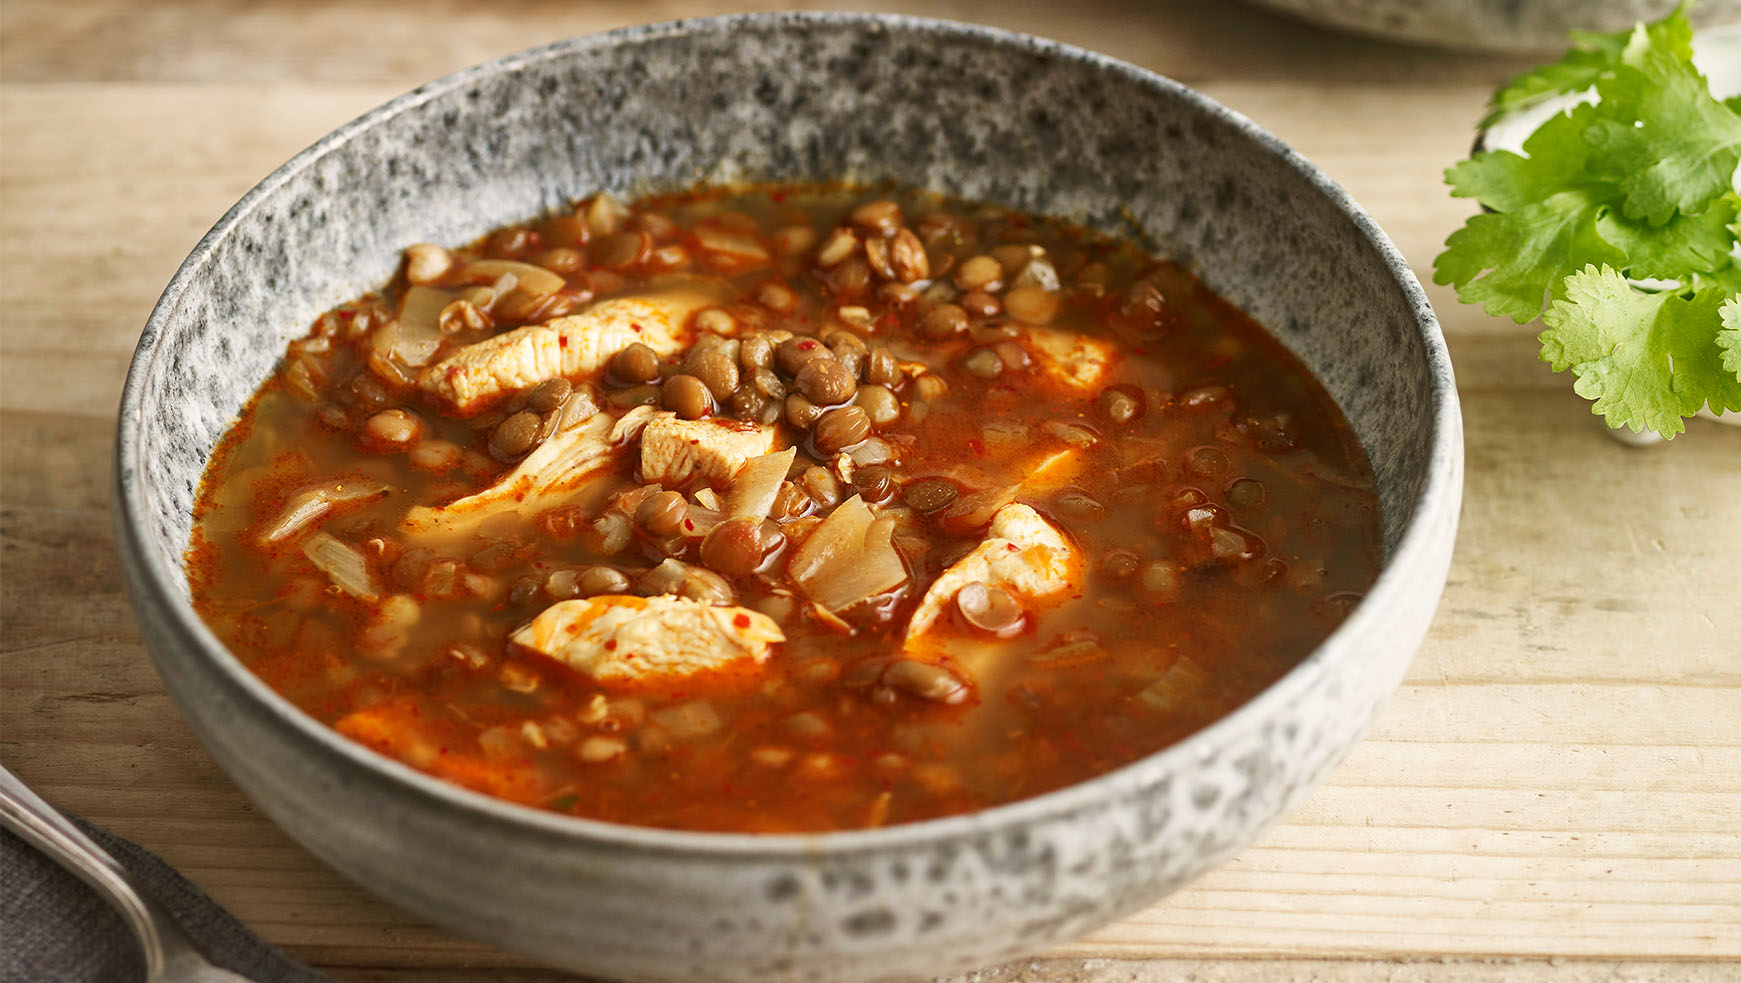 lentil_and_chicken_soup_website_angle-925502.jpg